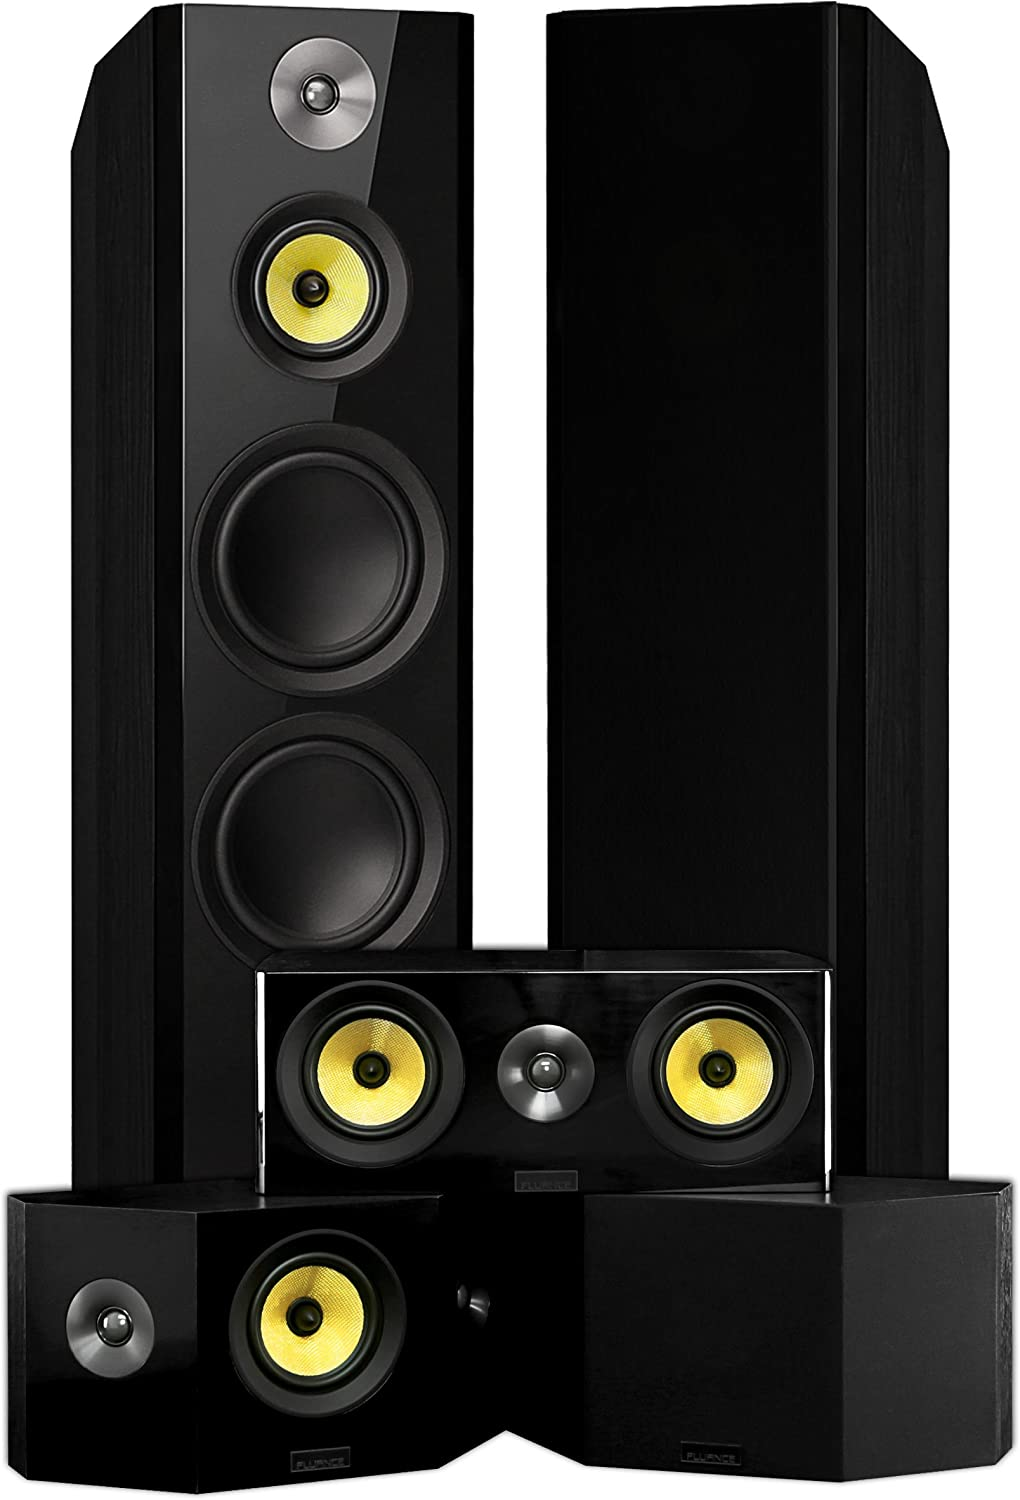 Fluance SignatureSurround Sound Home Theater 5.0 Channel Speaker System Including Three-Way Floorstanding Towers, Center Channel, and Bipolar Speakers - Black Ash (HF50BB)